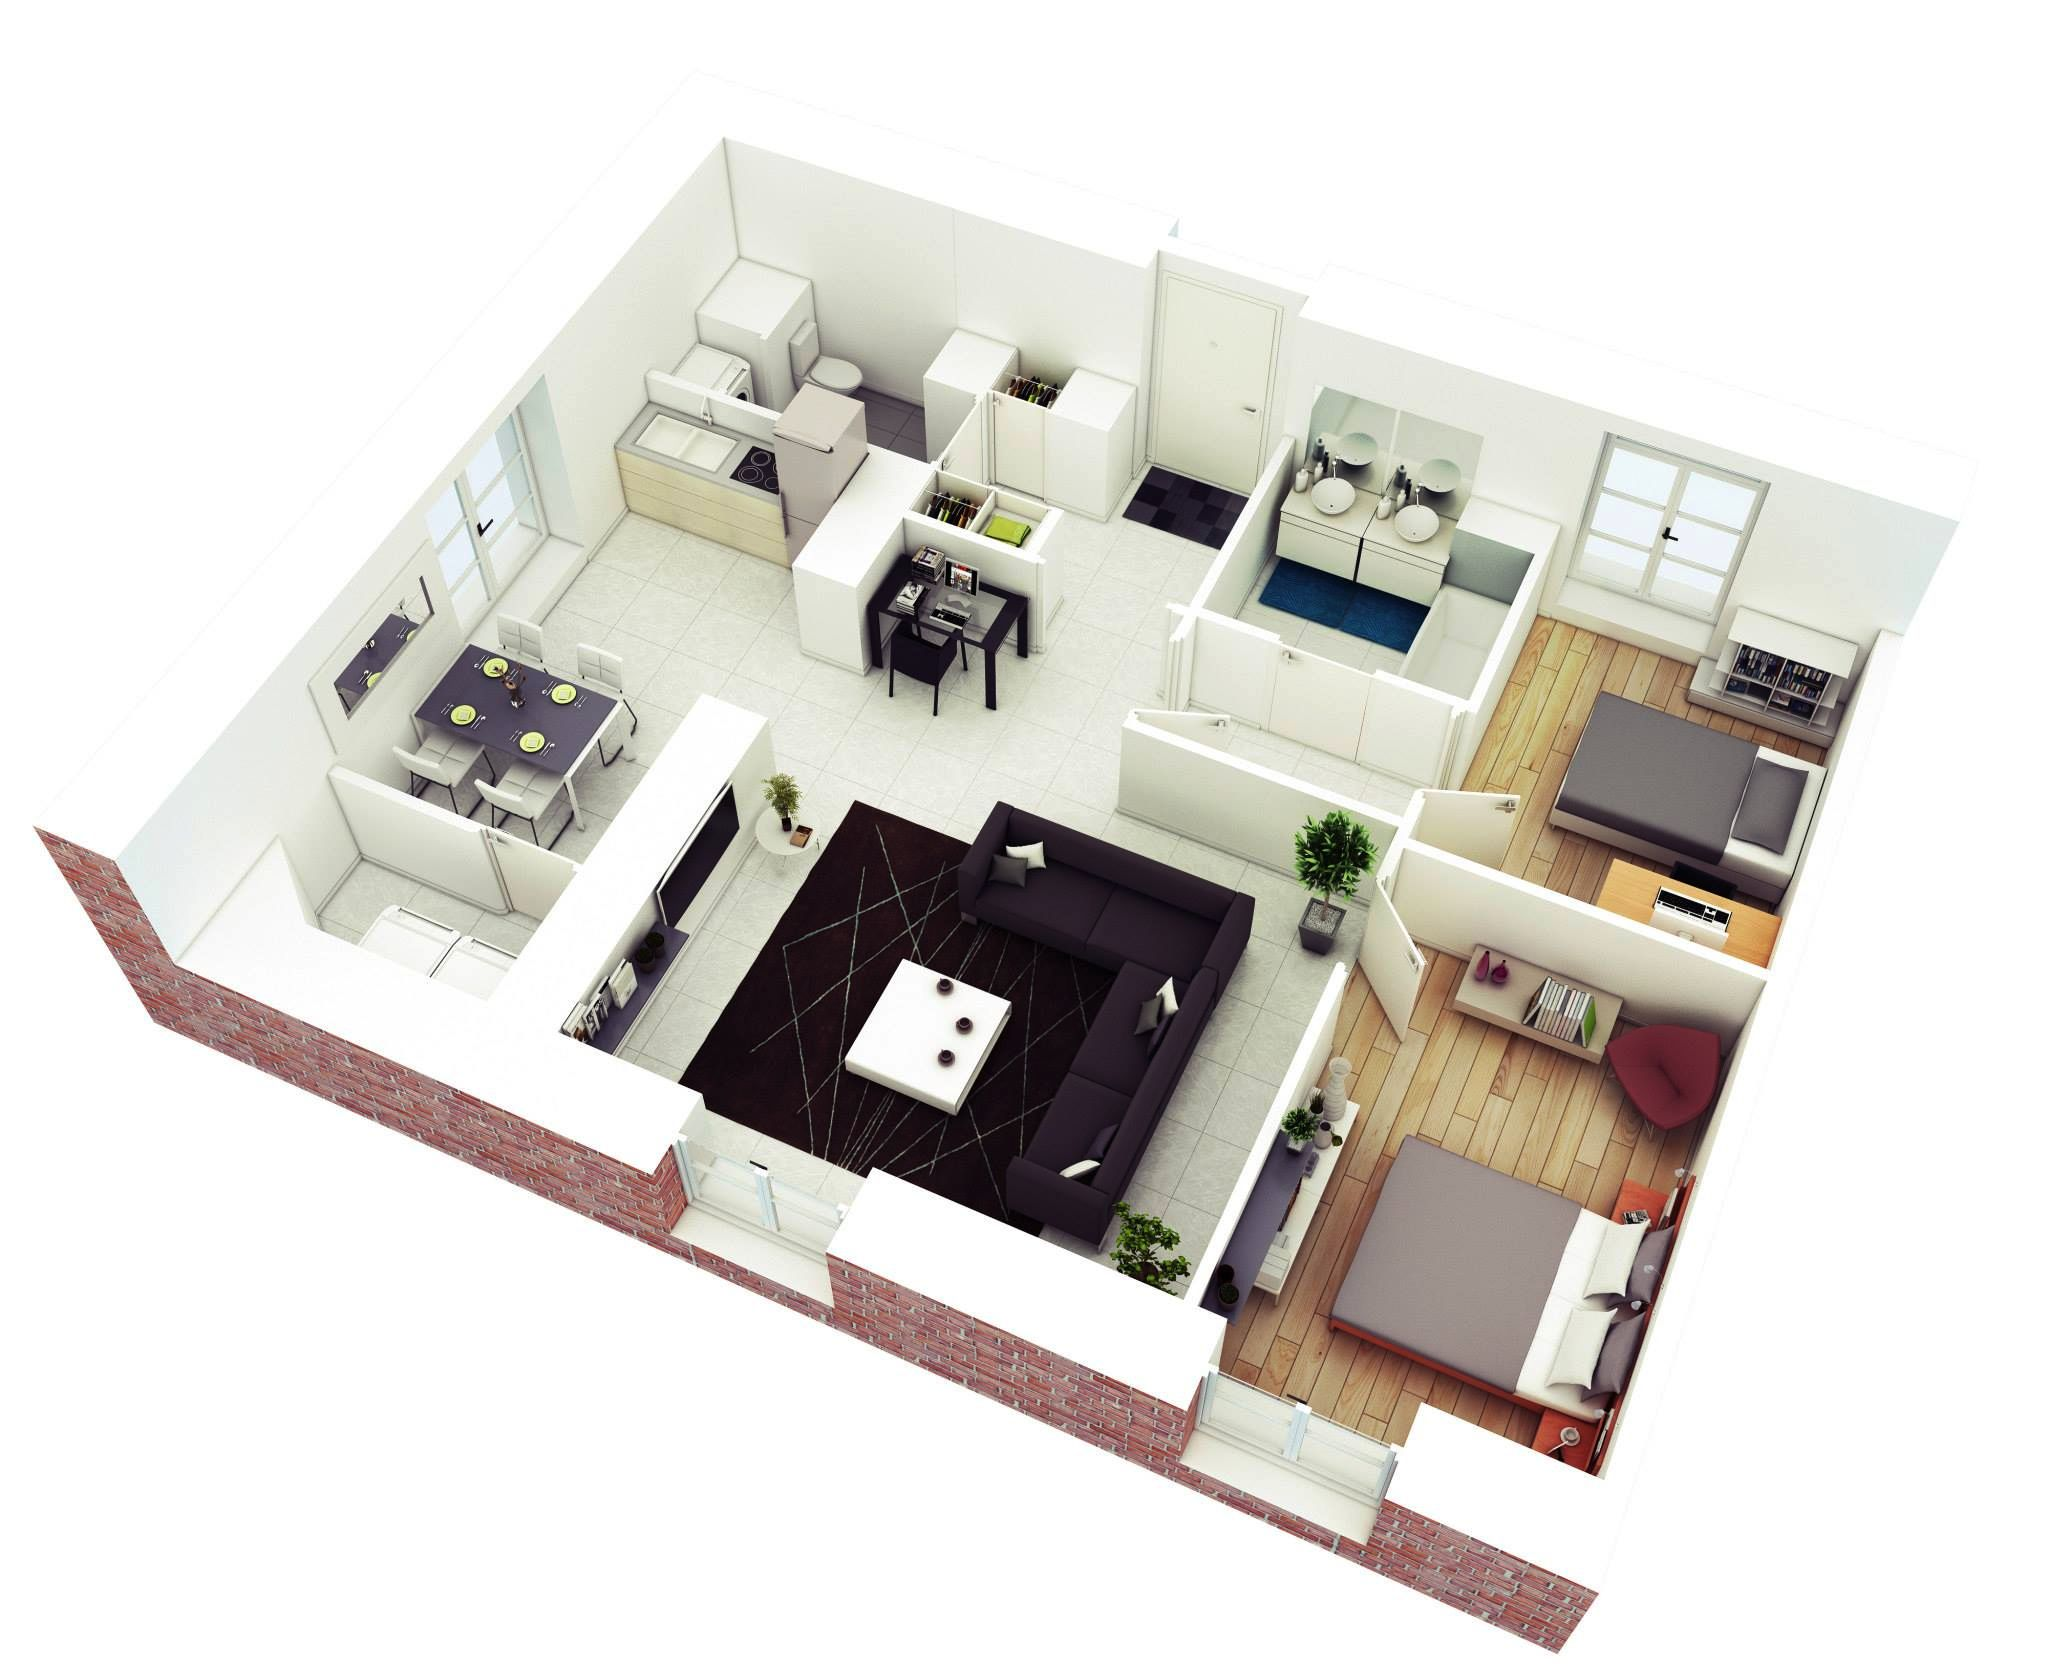 Understanding 3d Floor Plans And Finding The Right Layout For You Rh  Homedit Com Interior Planning U0026 Design Inc Interior Design Layout Living  Room